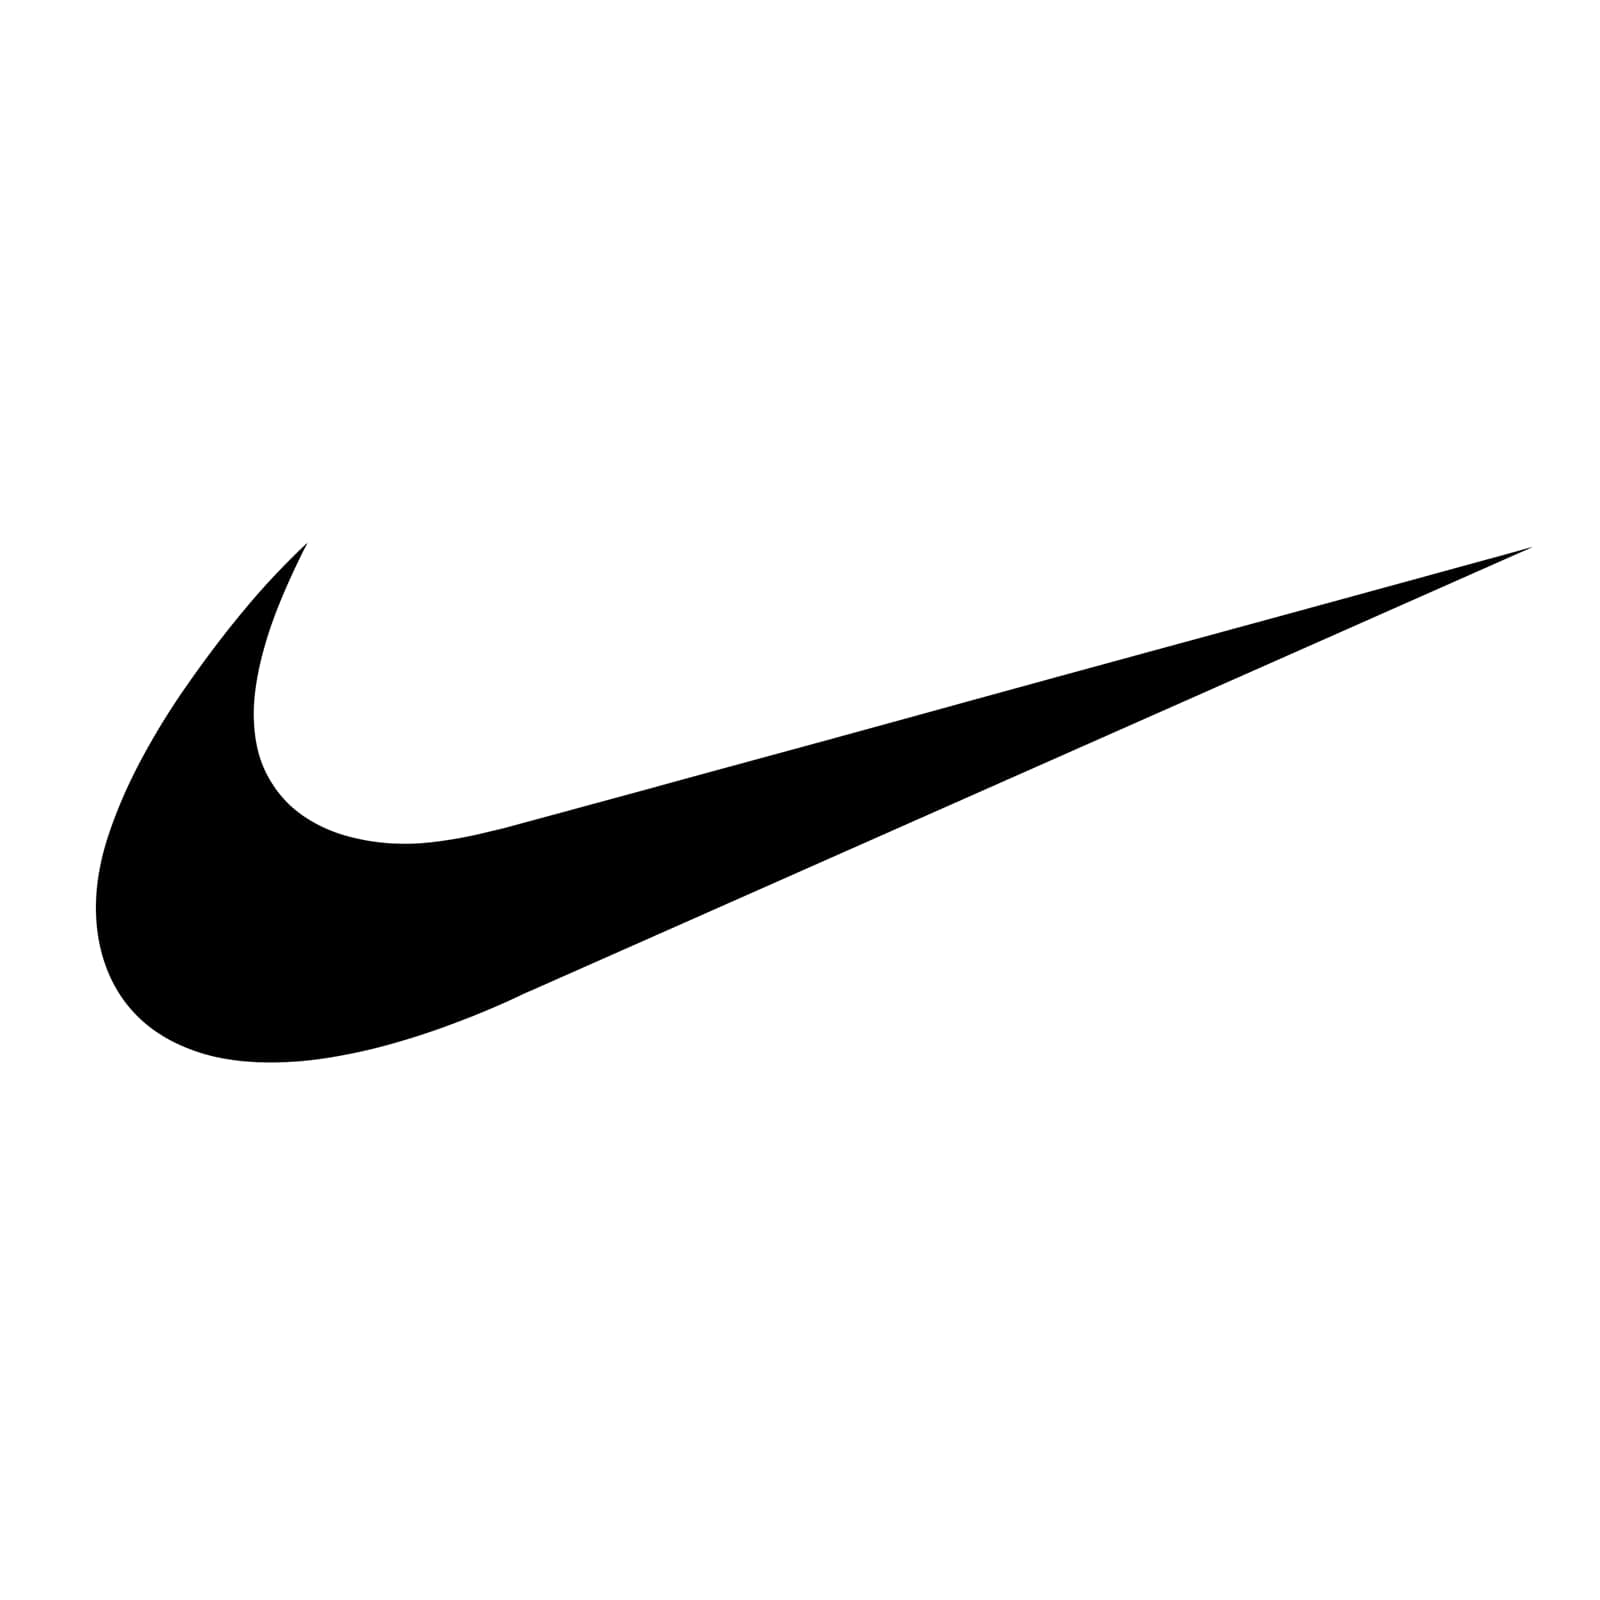 Nike Store Coupon for Additional Savings on Clearance Items  20% Off + Free S&H w/ Nike+ Acct.